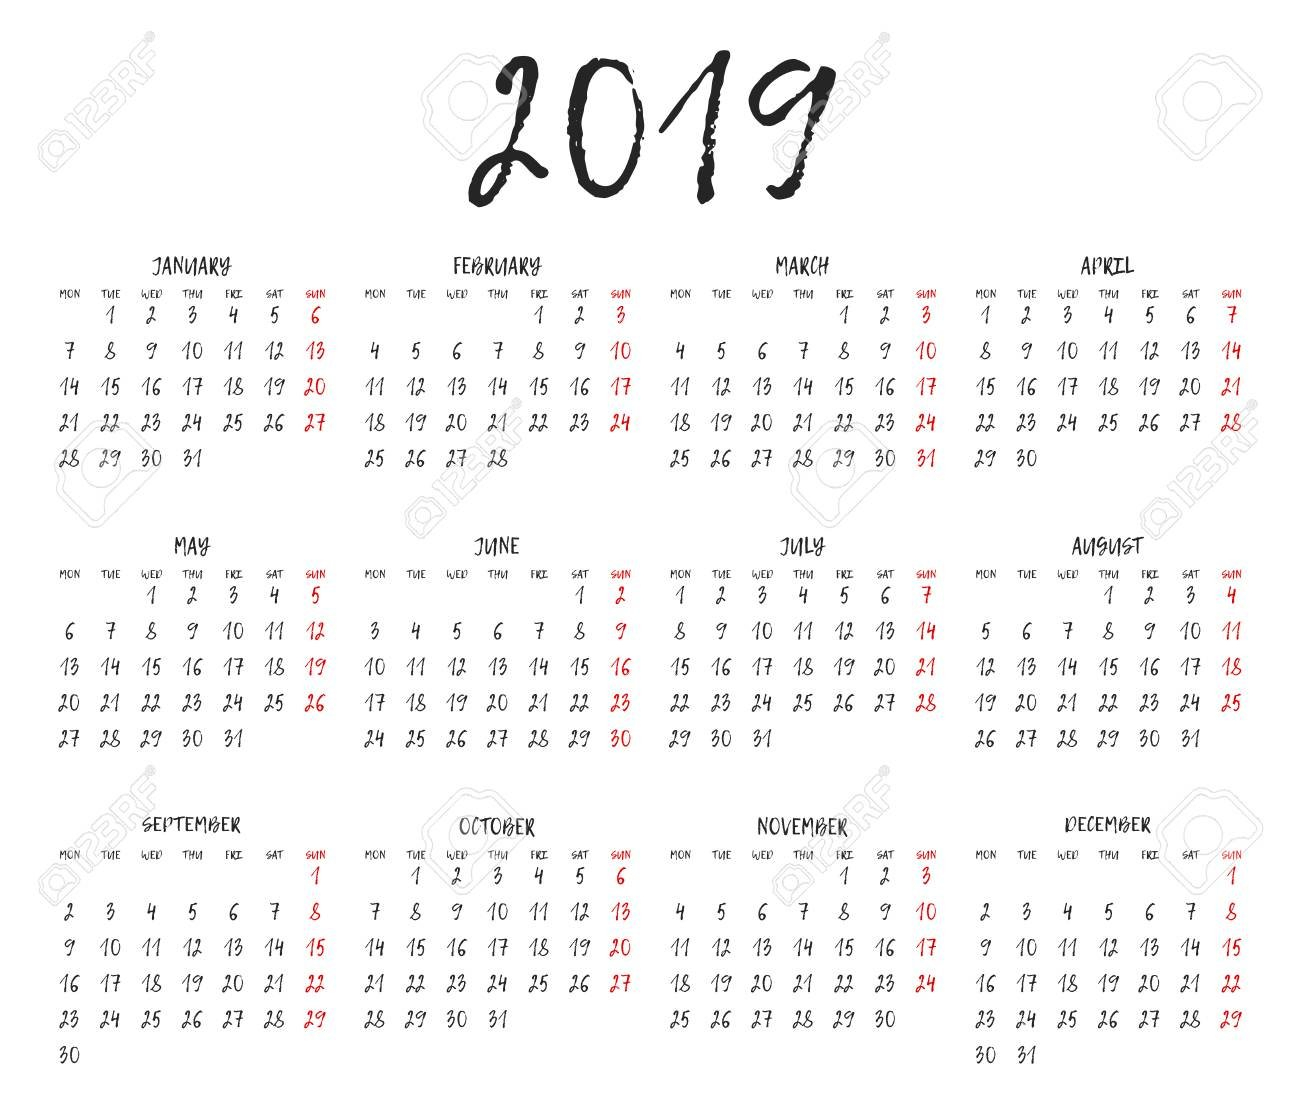 Simple Calendar Grid For 2019. Calendar Template. Week Starts Monday Calendar 2019 Grid